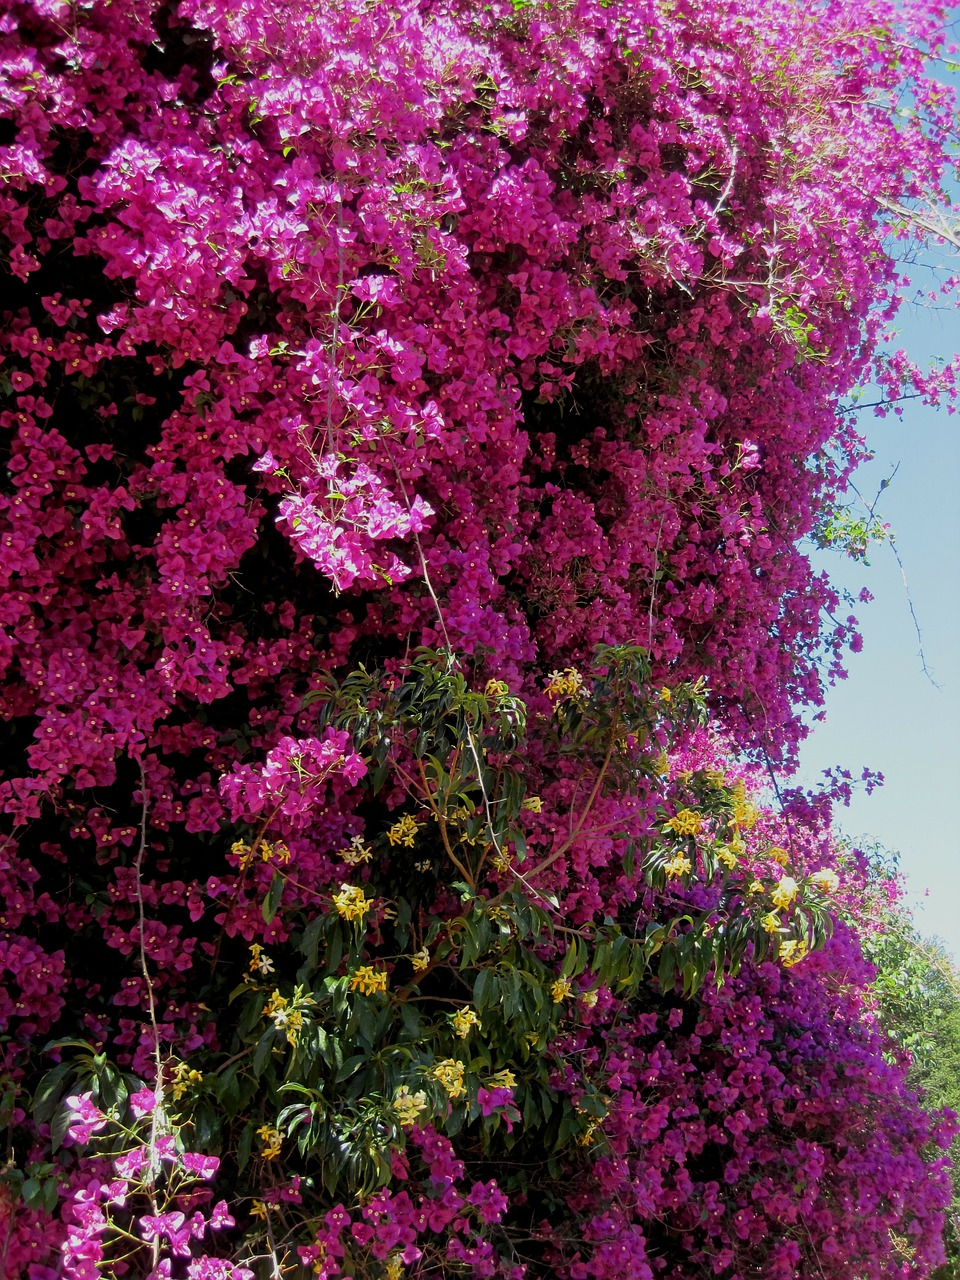 bougainvillea,shower,flowers,pink,bright,yellow between,dense,free pictures, free photos, free images, royalty free, free illustrations, public domain